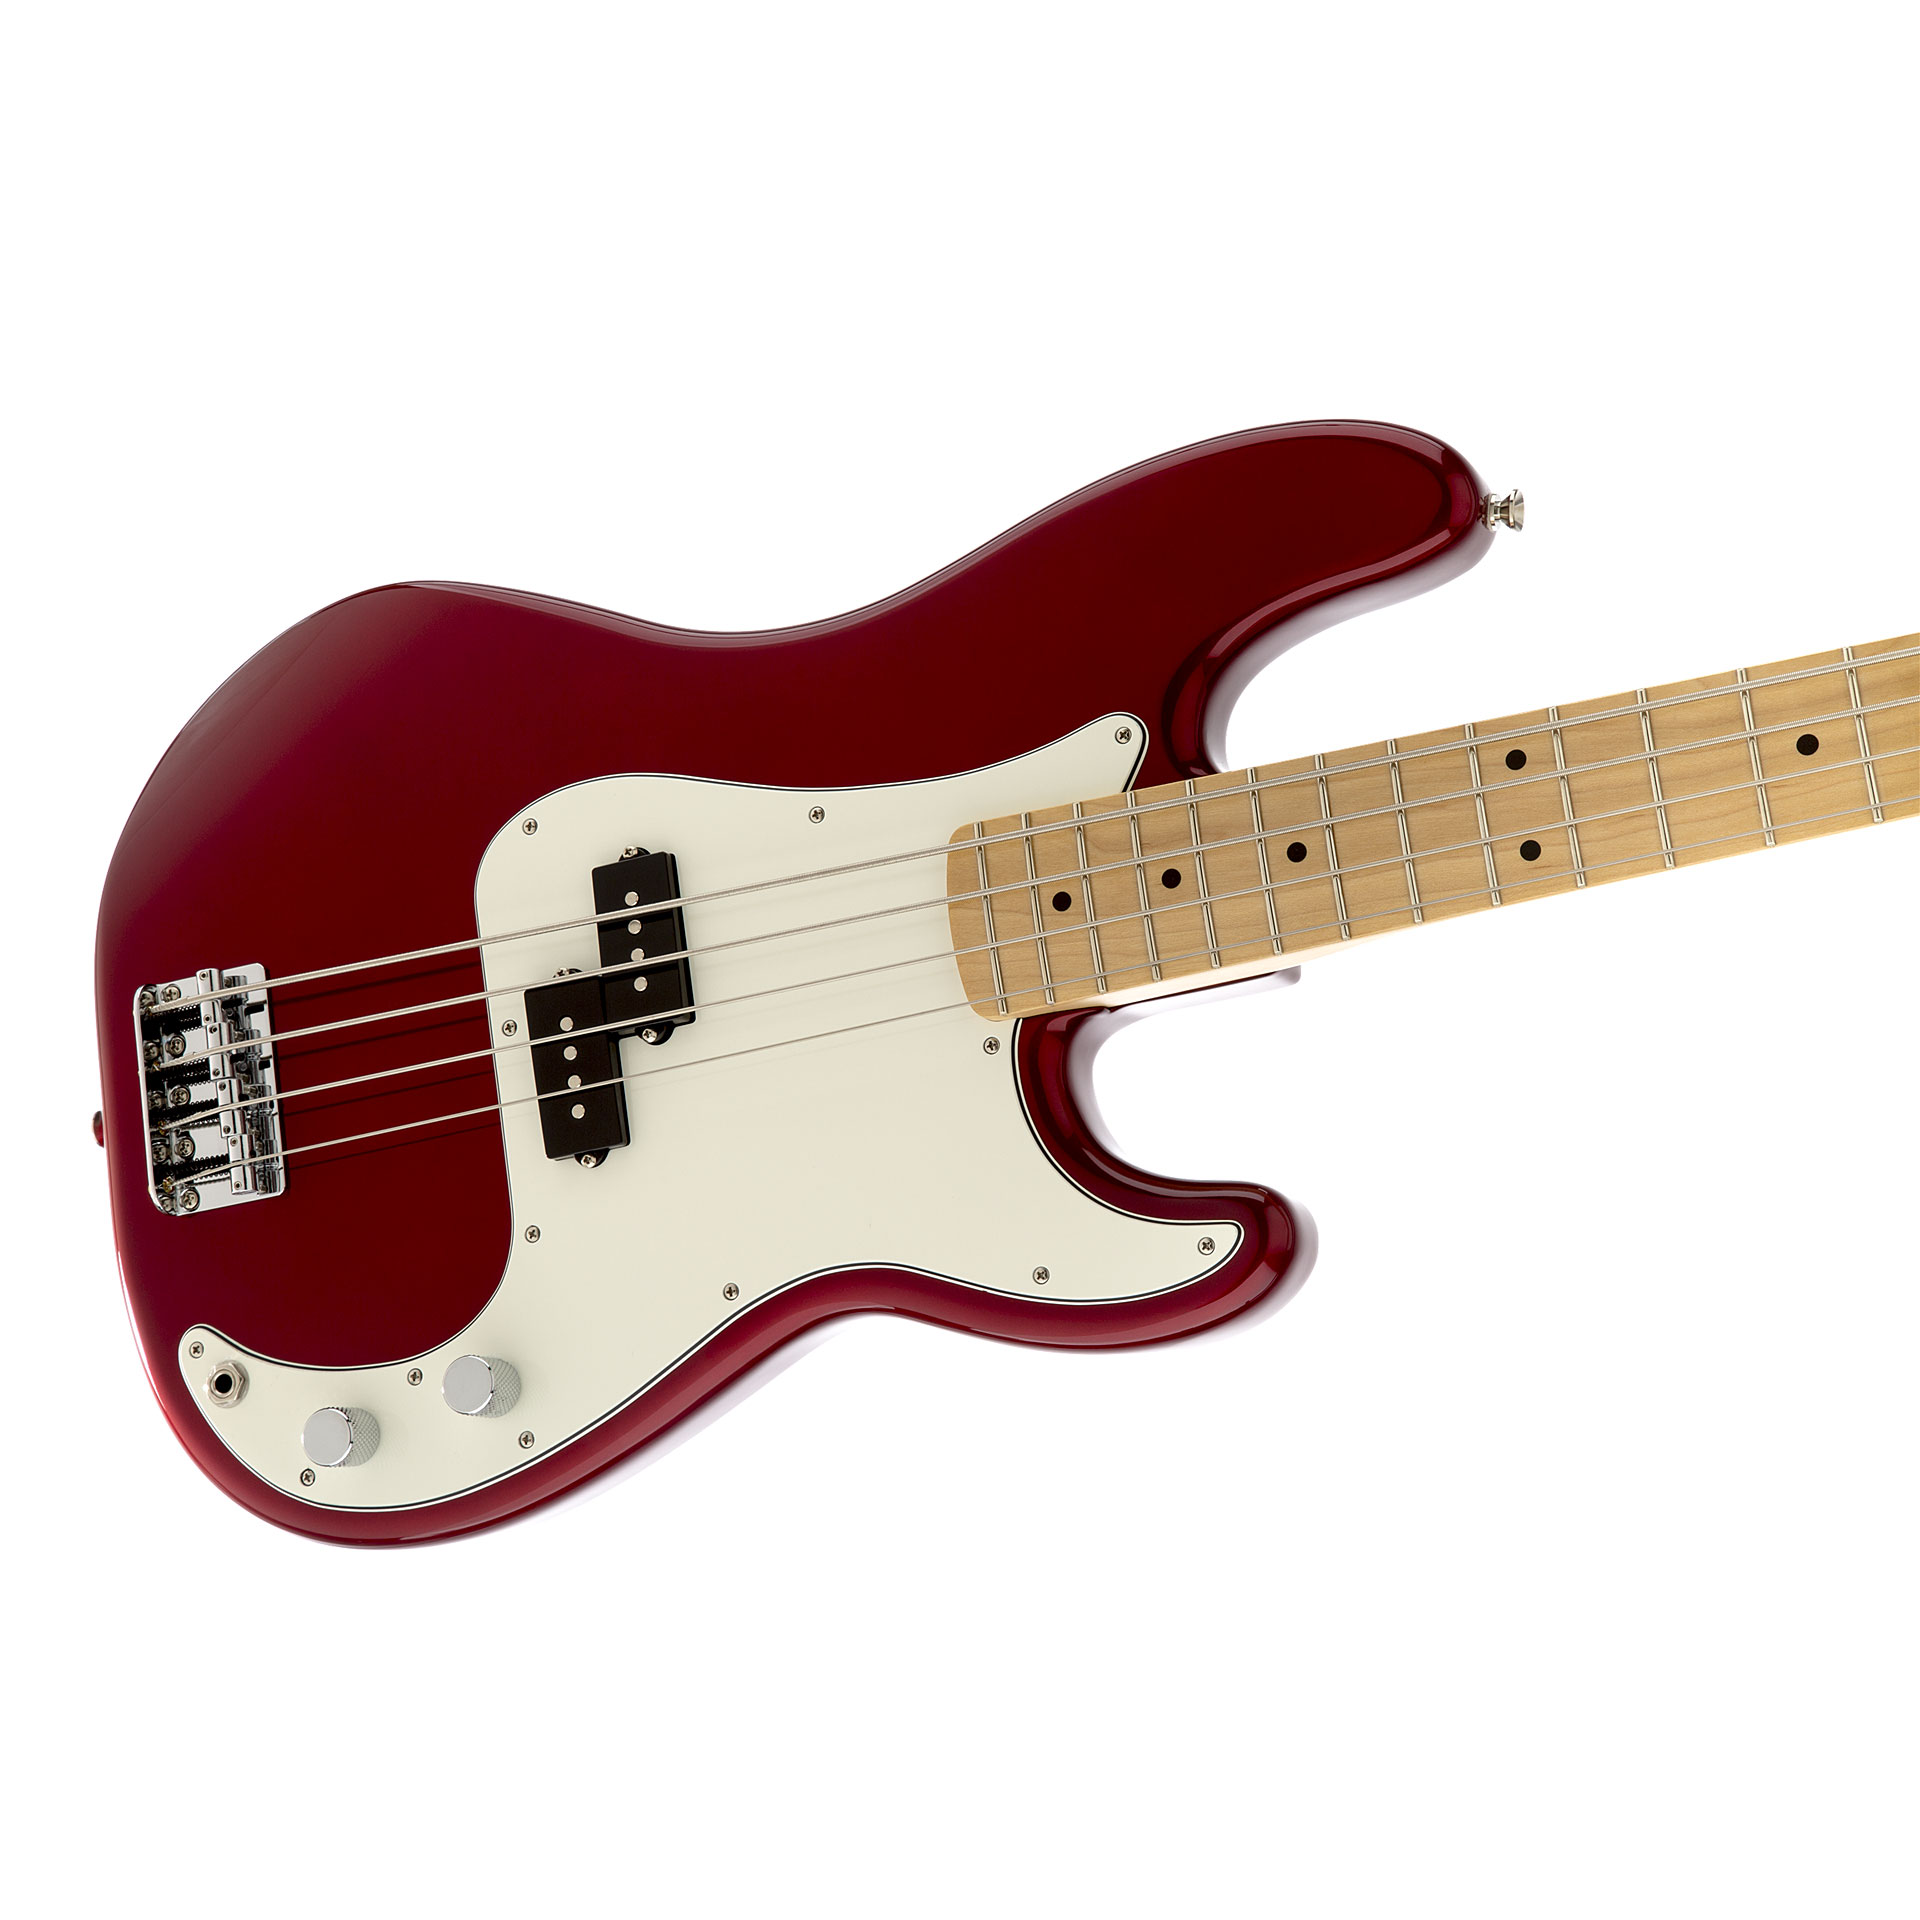 fender standard precision bass mn candy apple red electric bass guitar. Black Bedroom Furniture Sets. Home Design Ideas